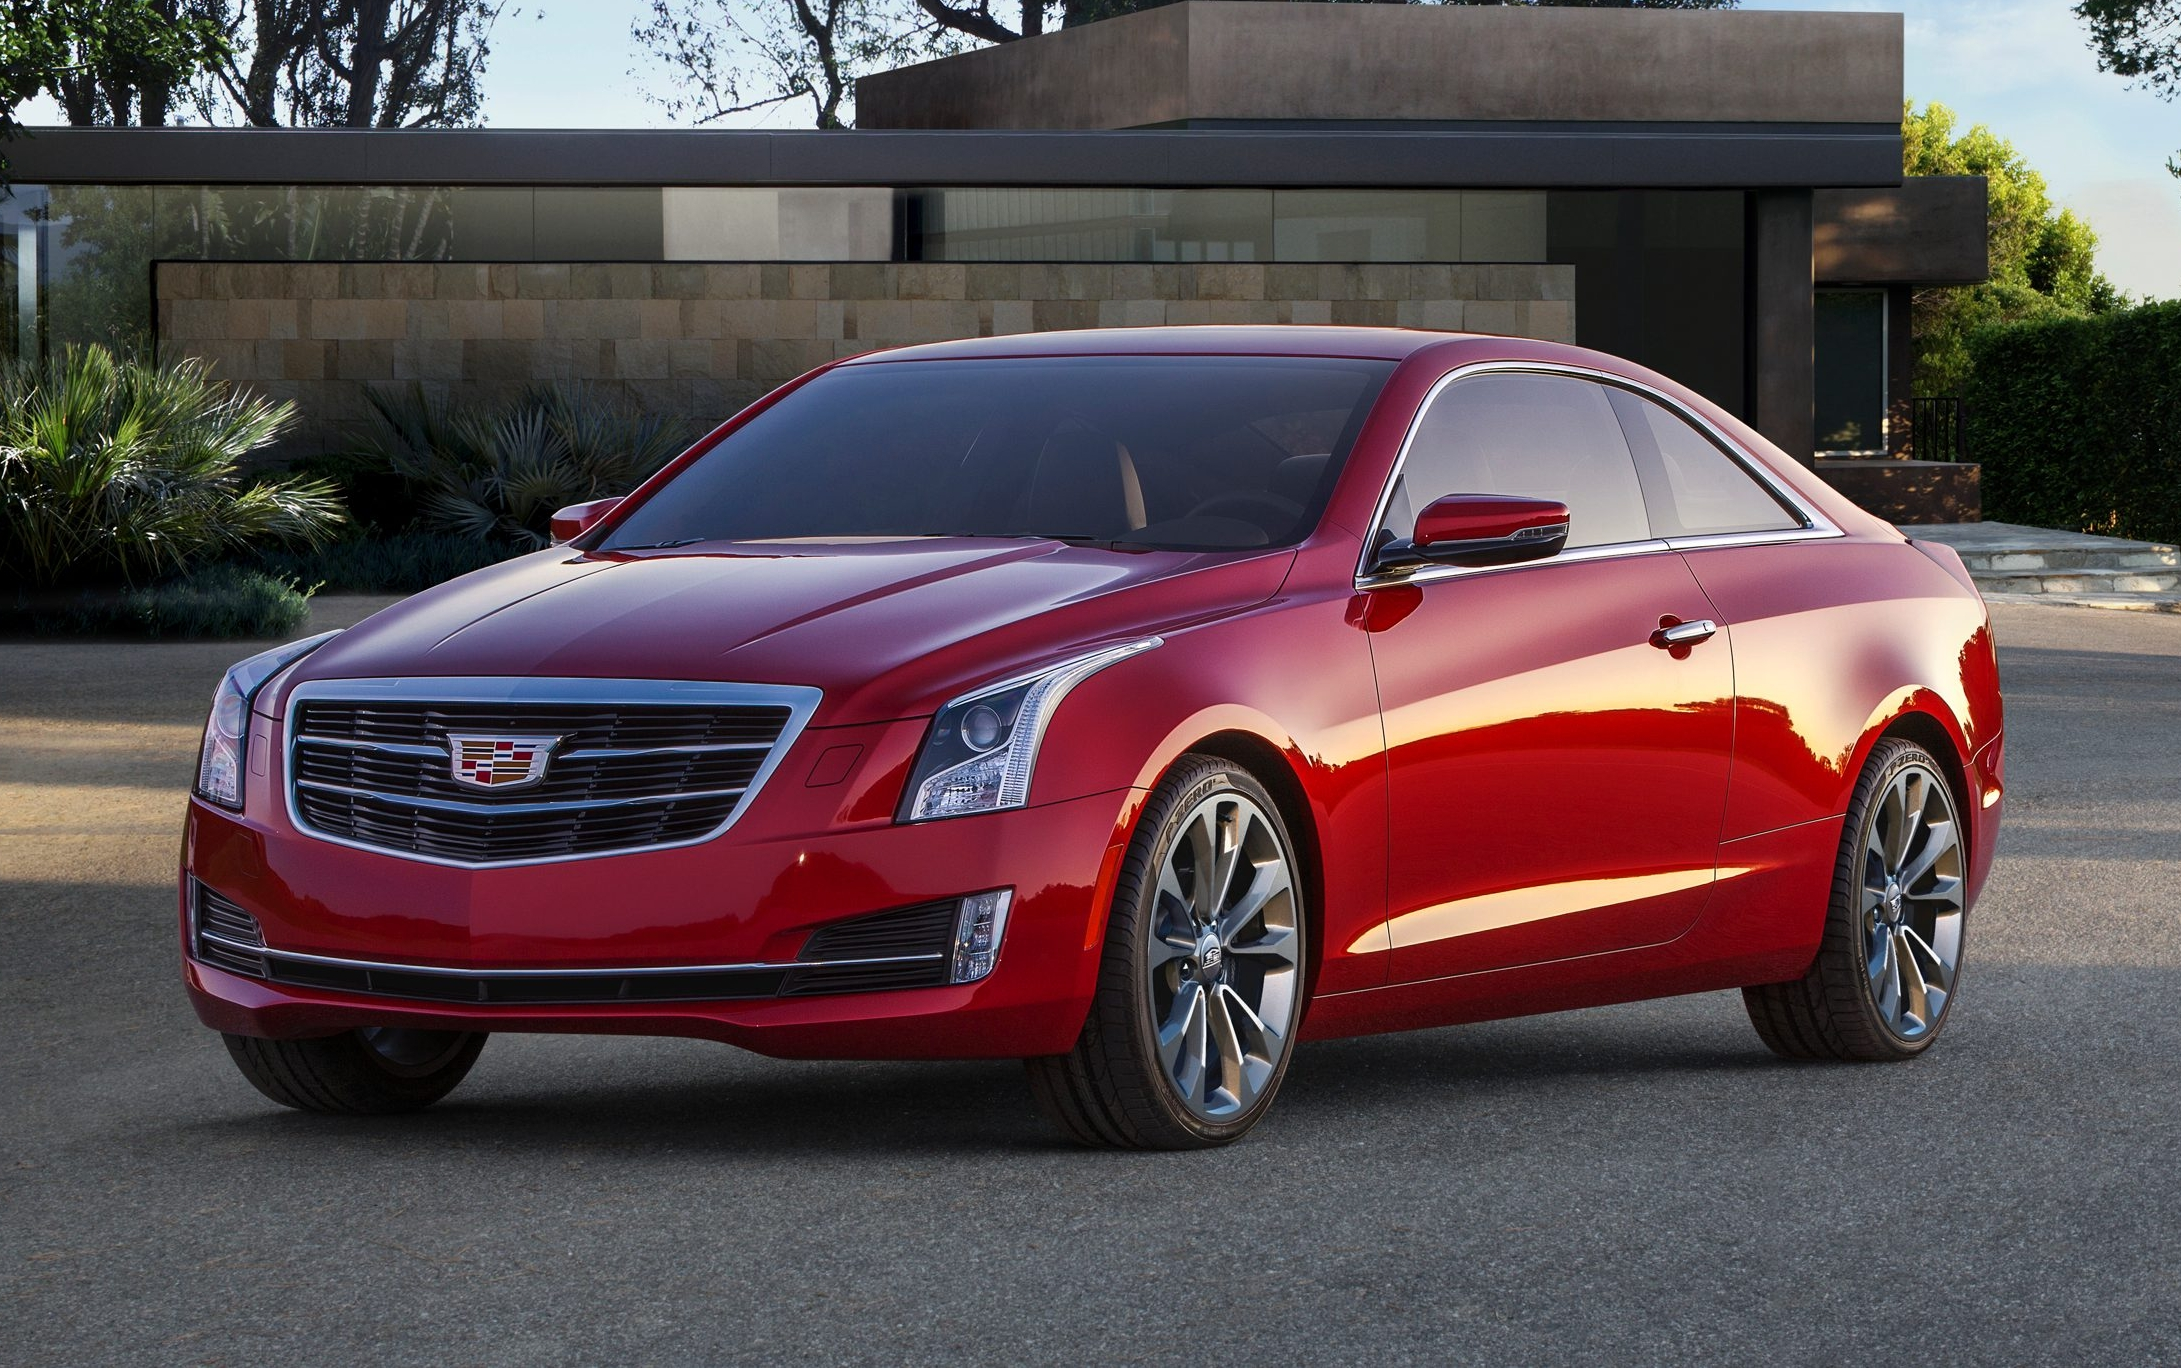 cts cadillac images wallpaper turbo luxury hd background sedan